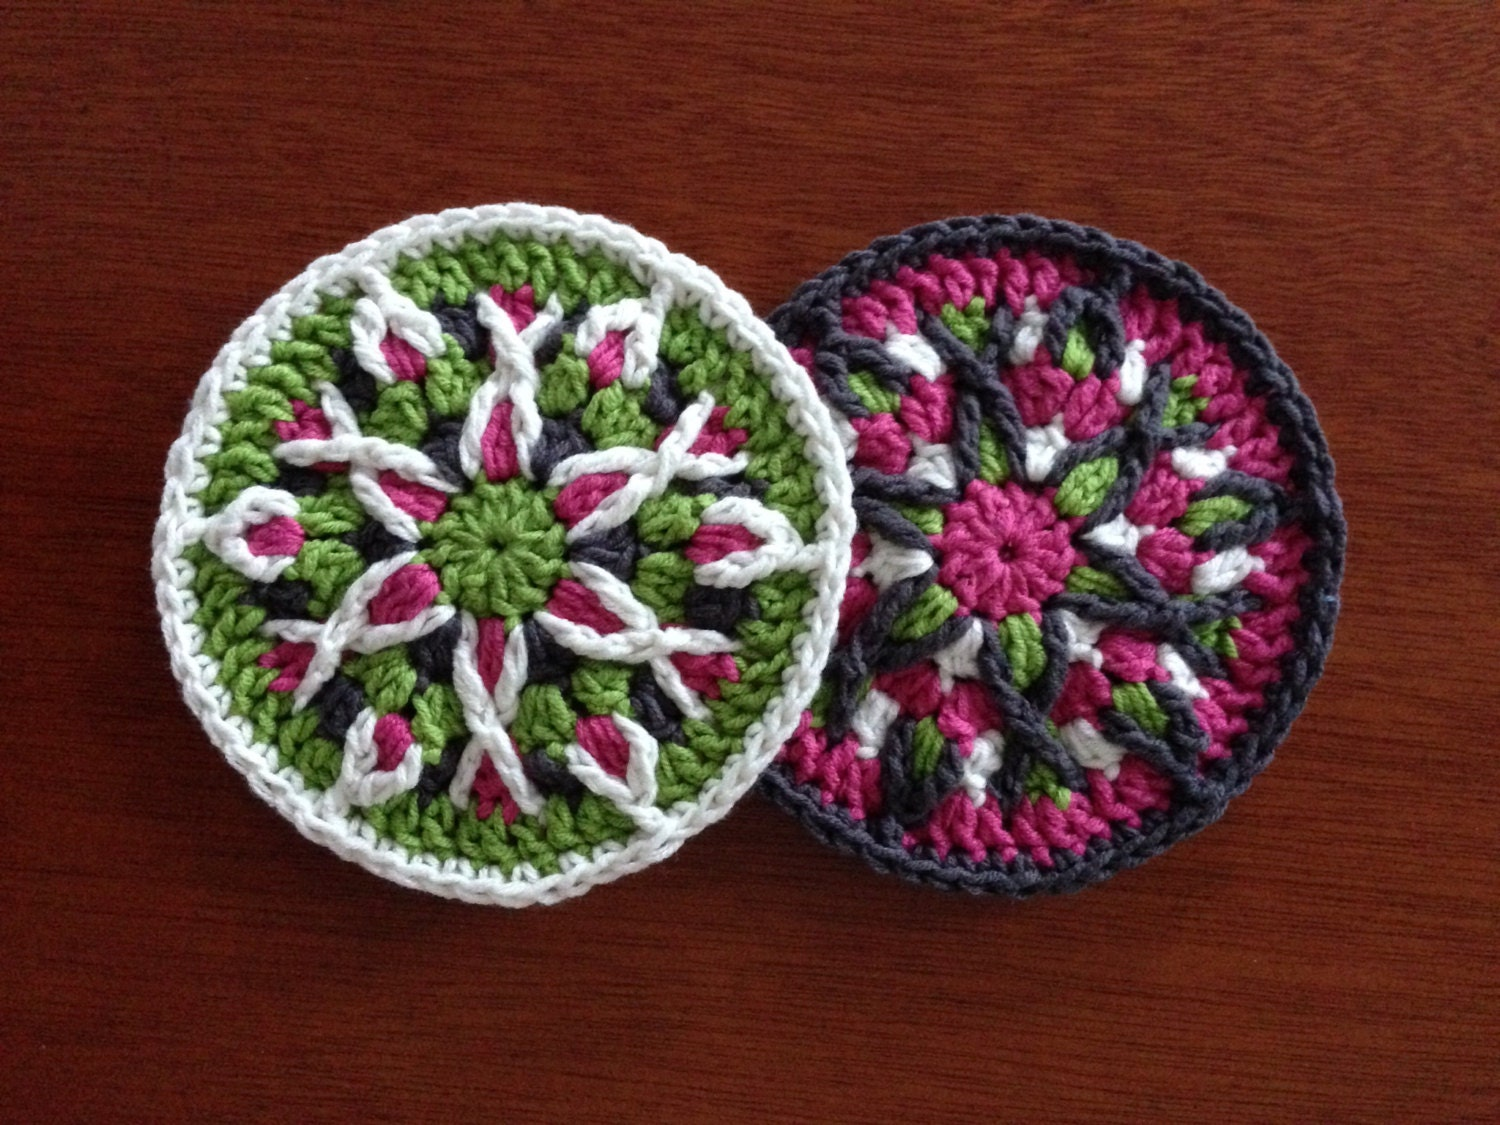 Crochet mandala pattern tutorial crochet coaster pattern zoom bankloansurffo Images